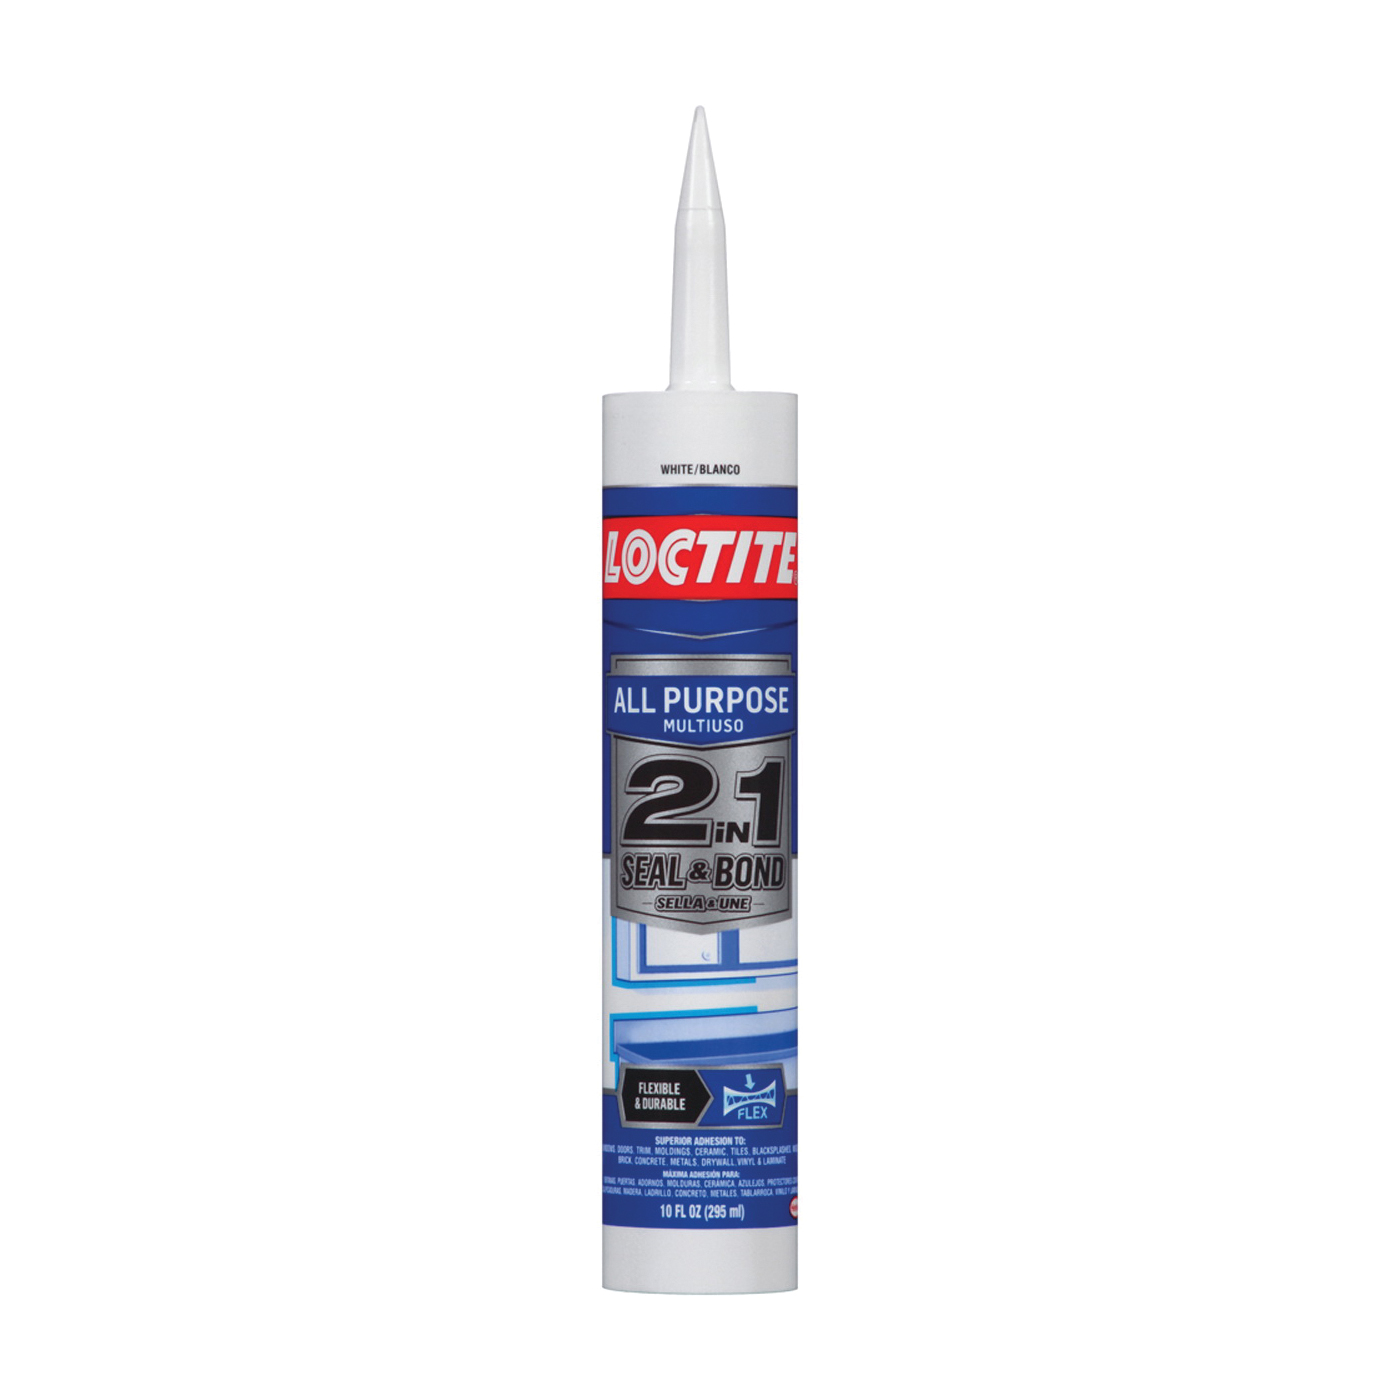 Picture of Loctite POLYSEAMSEAL 2154751 Adhesive Caulk, White, 24 hr to 2 weeks Curing, 40 to 100 deg F, 10 oz Package